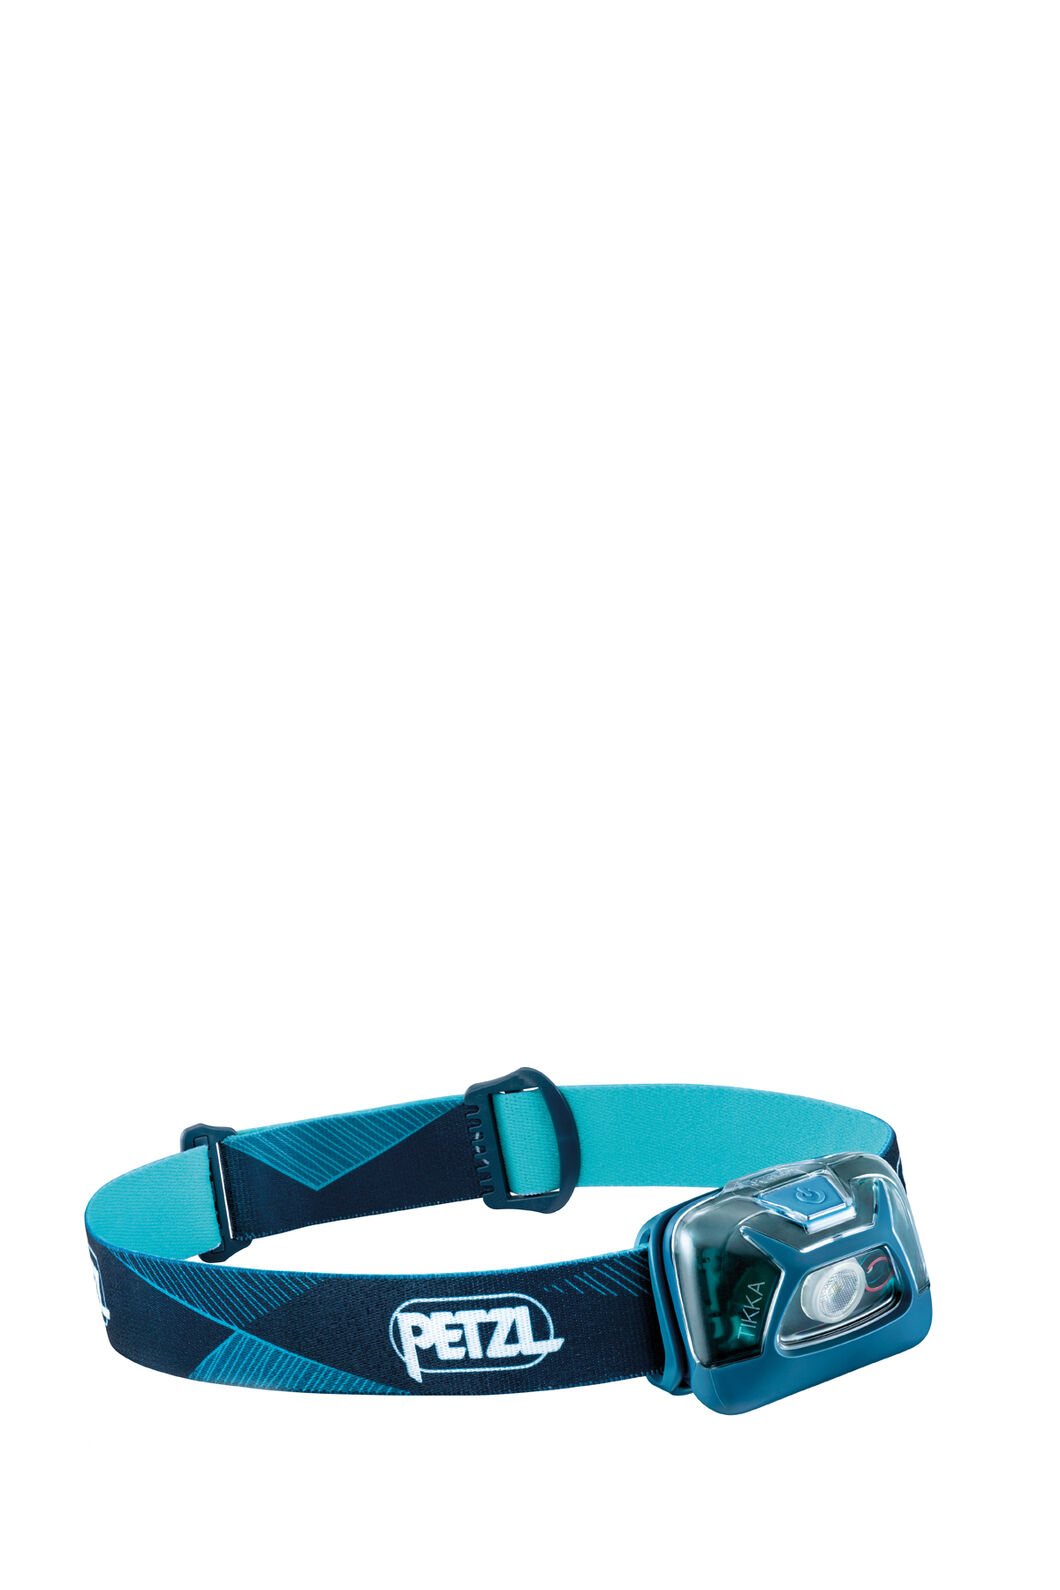 Petzl Tikka Head Torch, Blue, hi-res